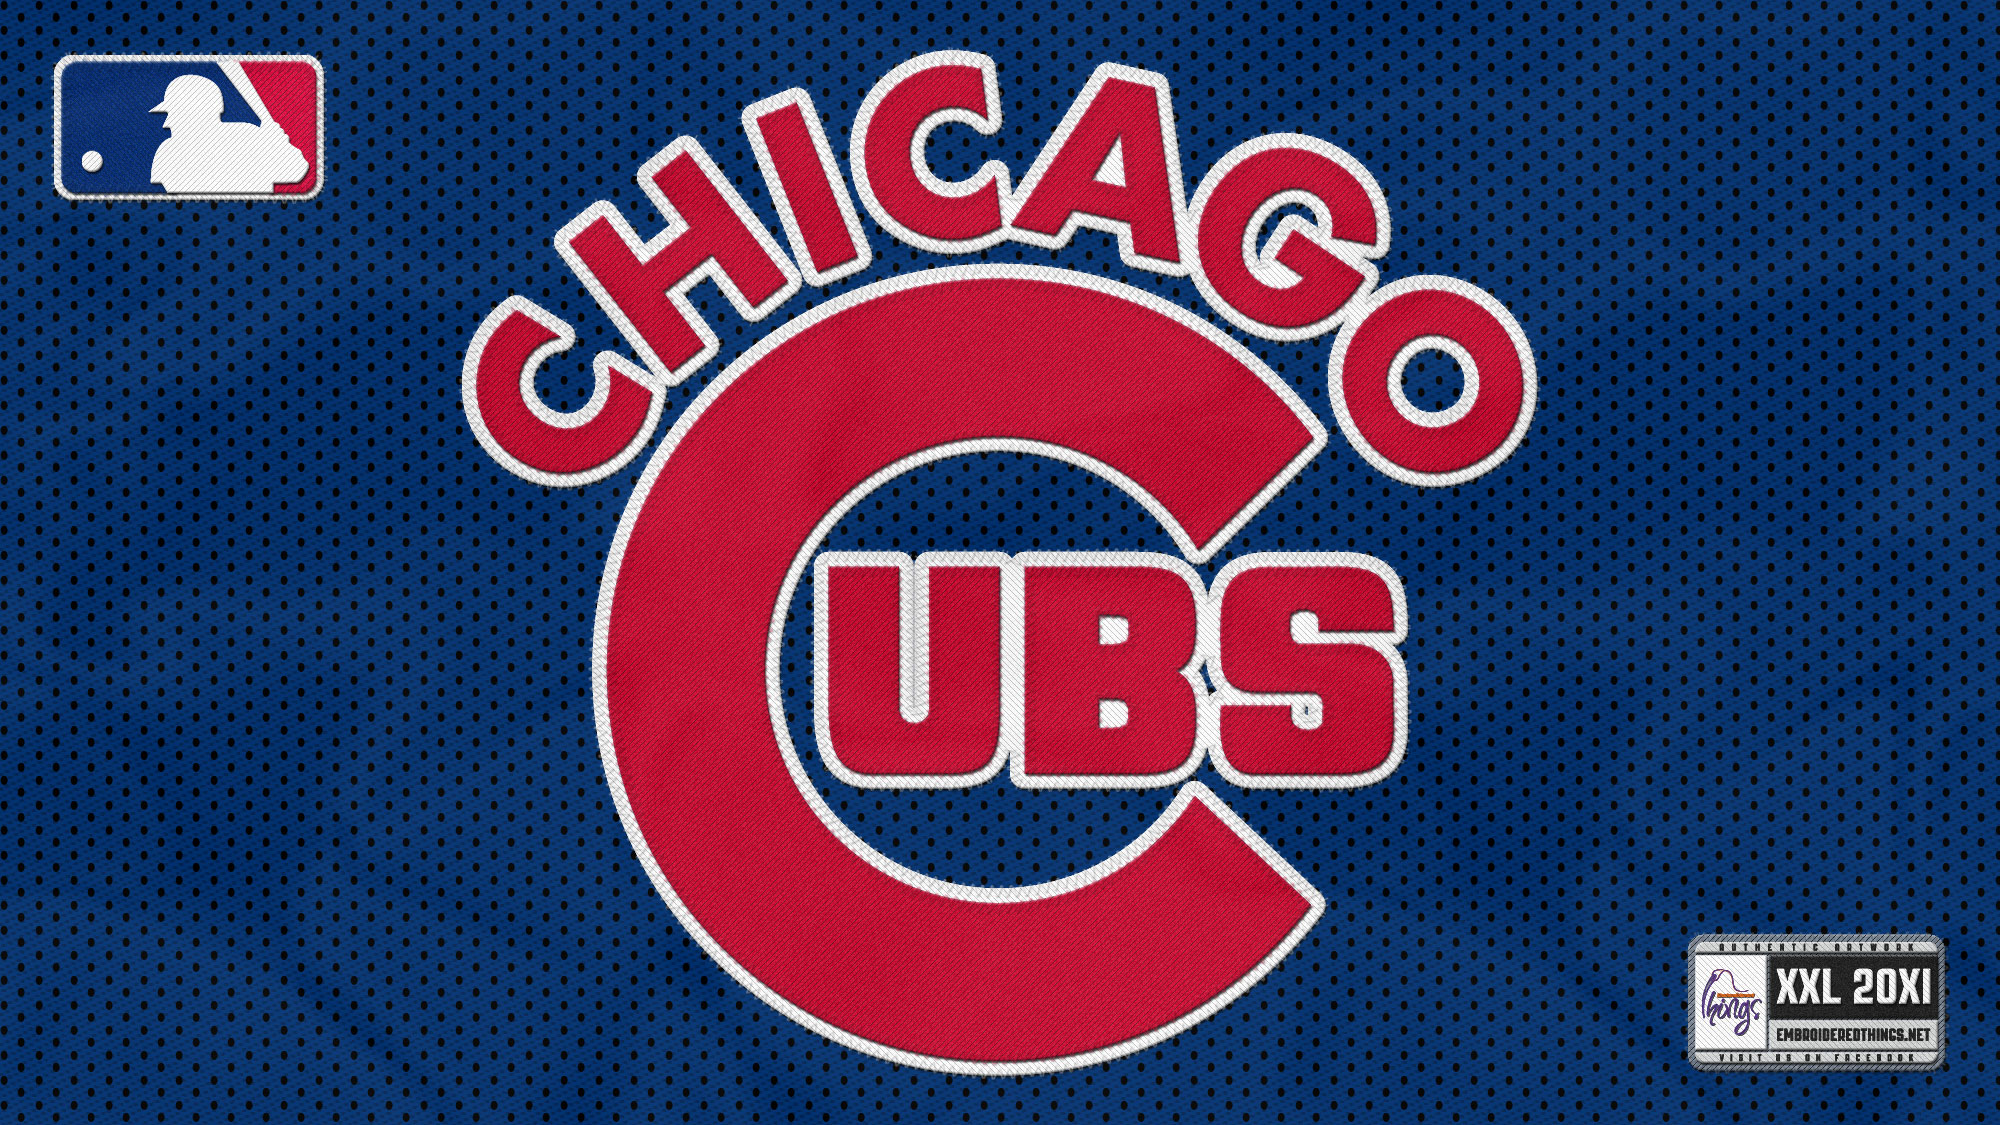 Chicago Cubs wallpapers Chicago Cubs background   Page 4 2000x1125